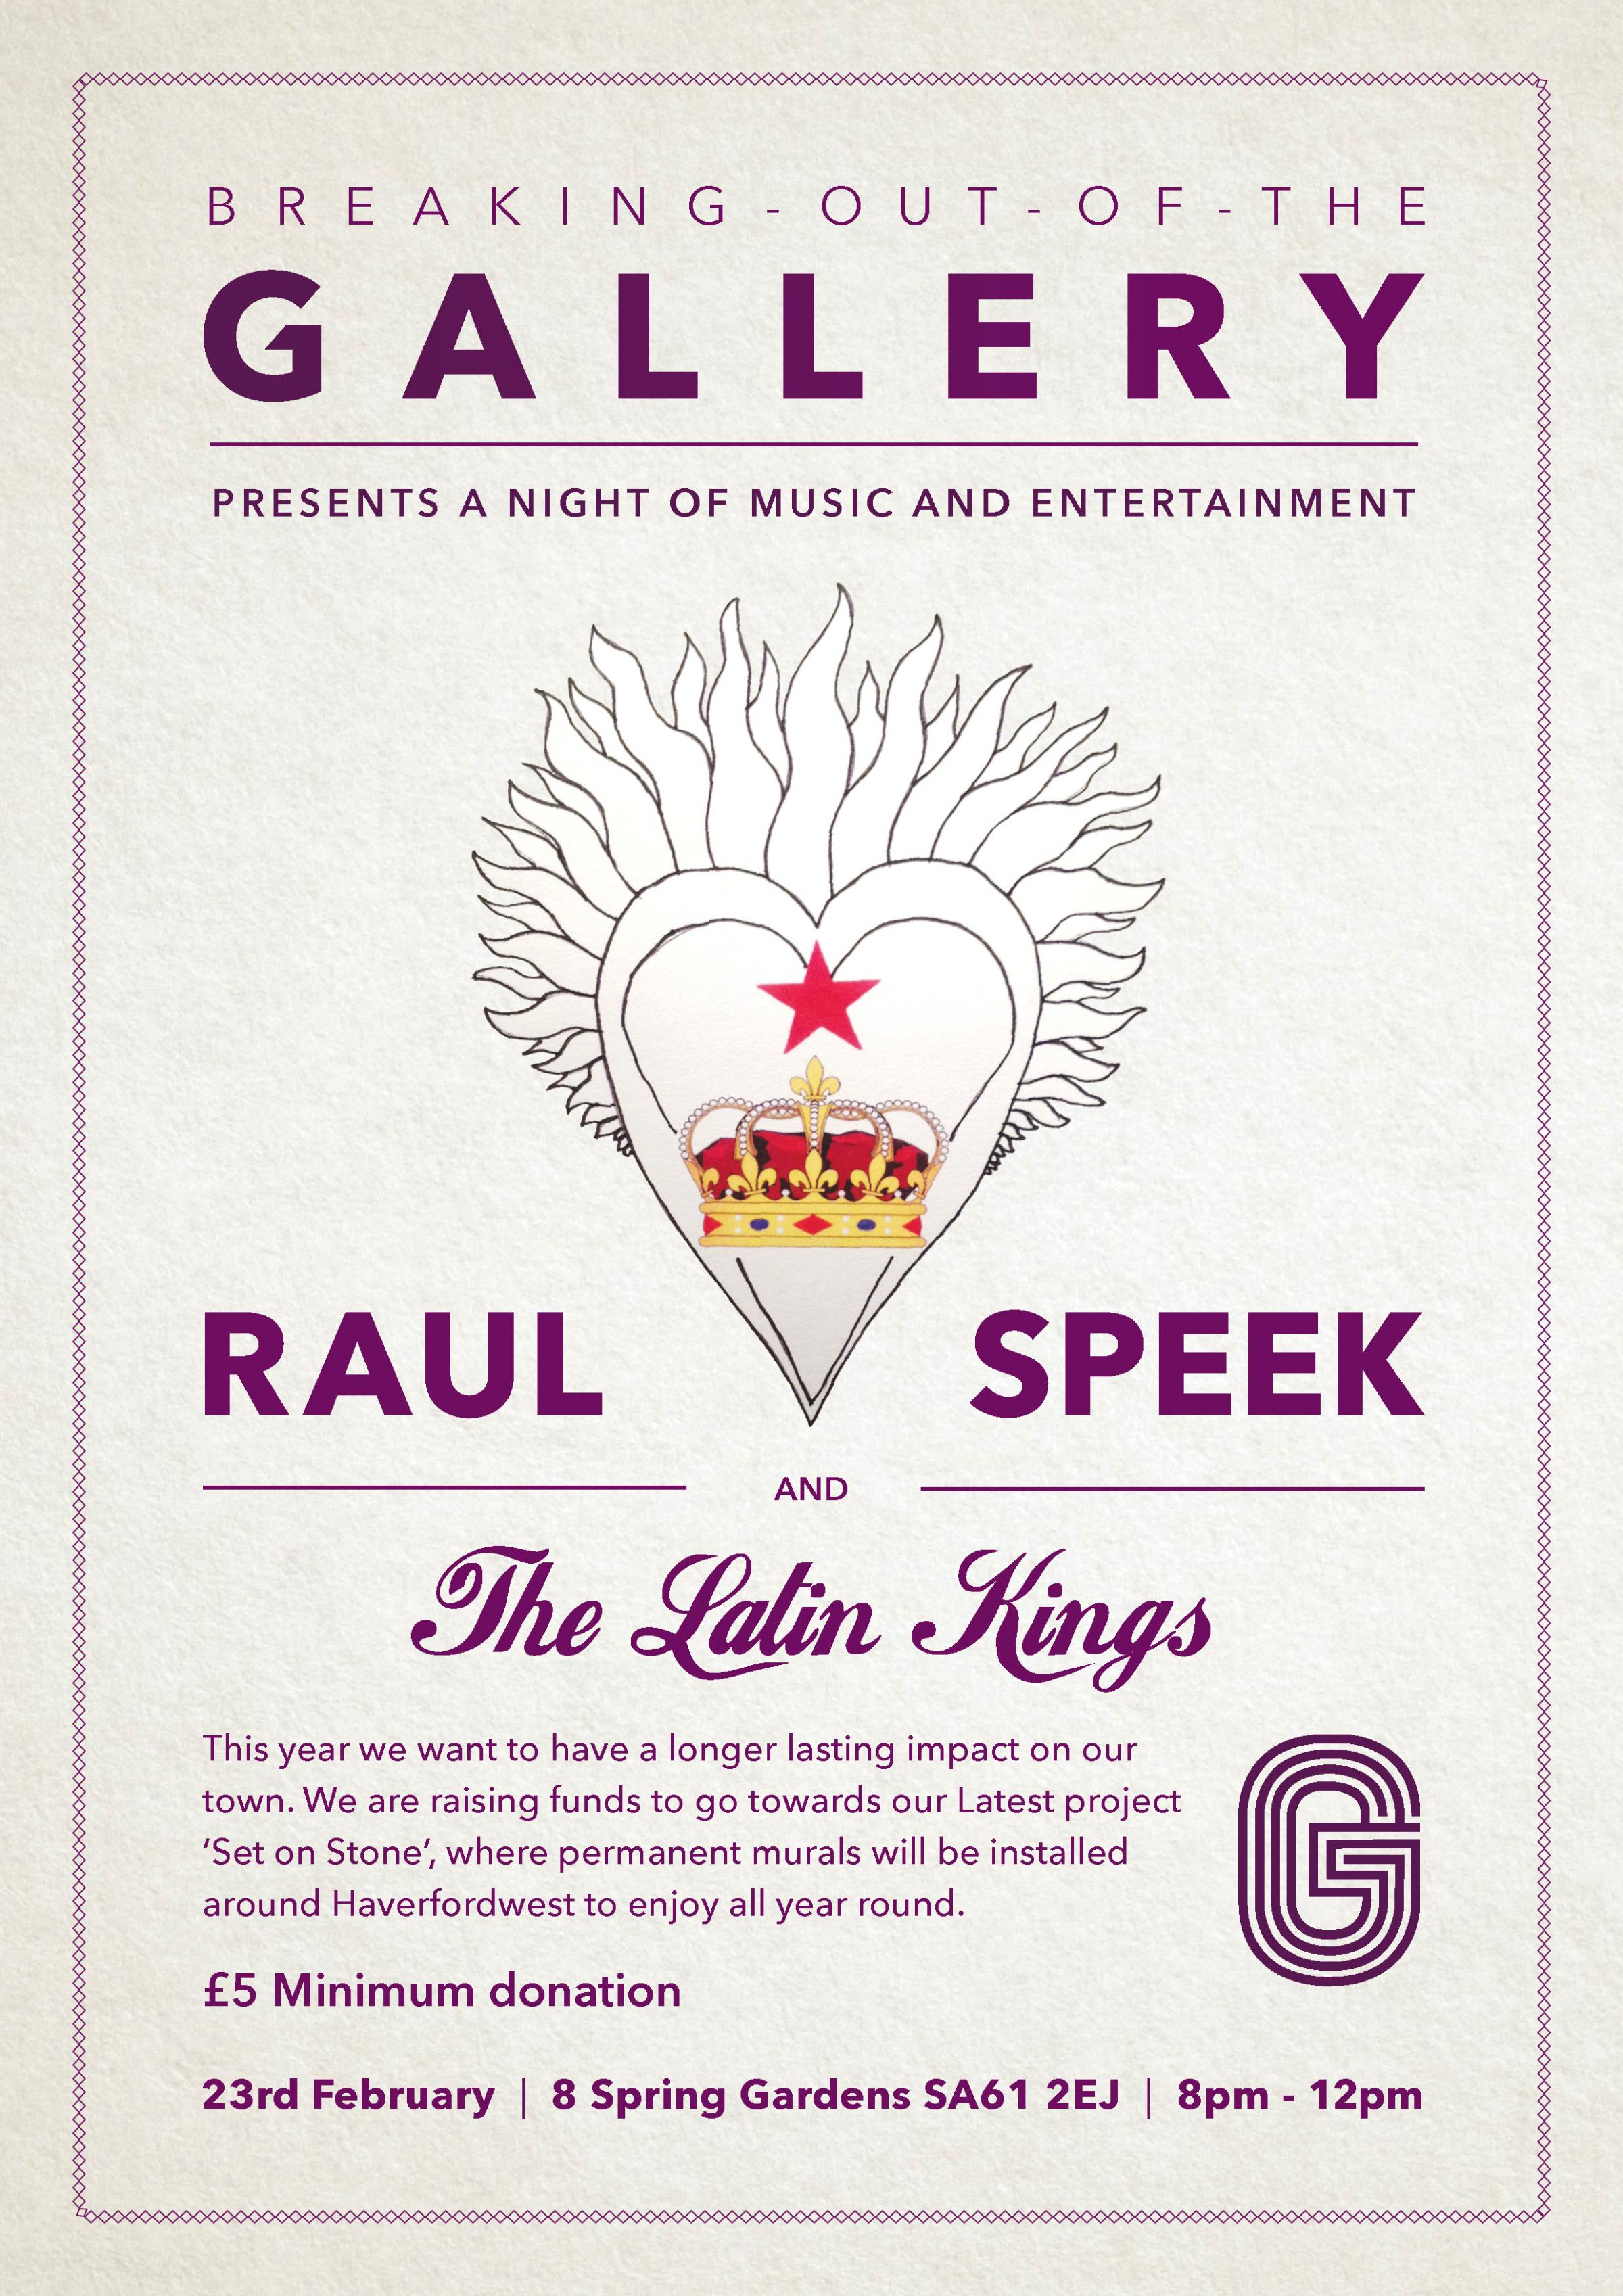 Breaking Out Of The Gallery Fundraiser Event: Raul Speek & The Latin Kings